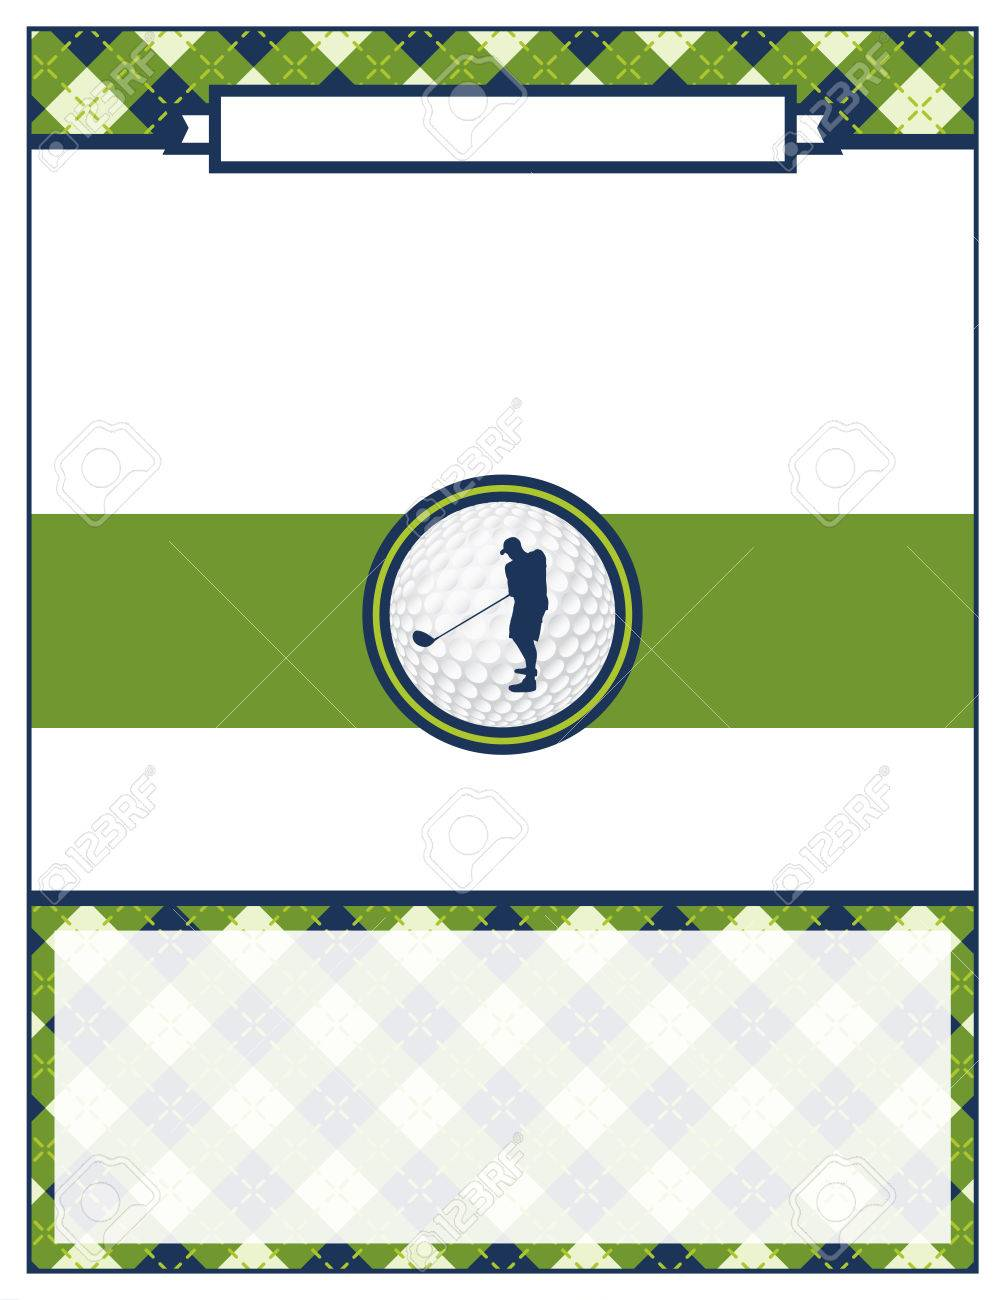 A template for a golf tournament scramble invitation flyer. Vector EPS 10 available. - 56861254